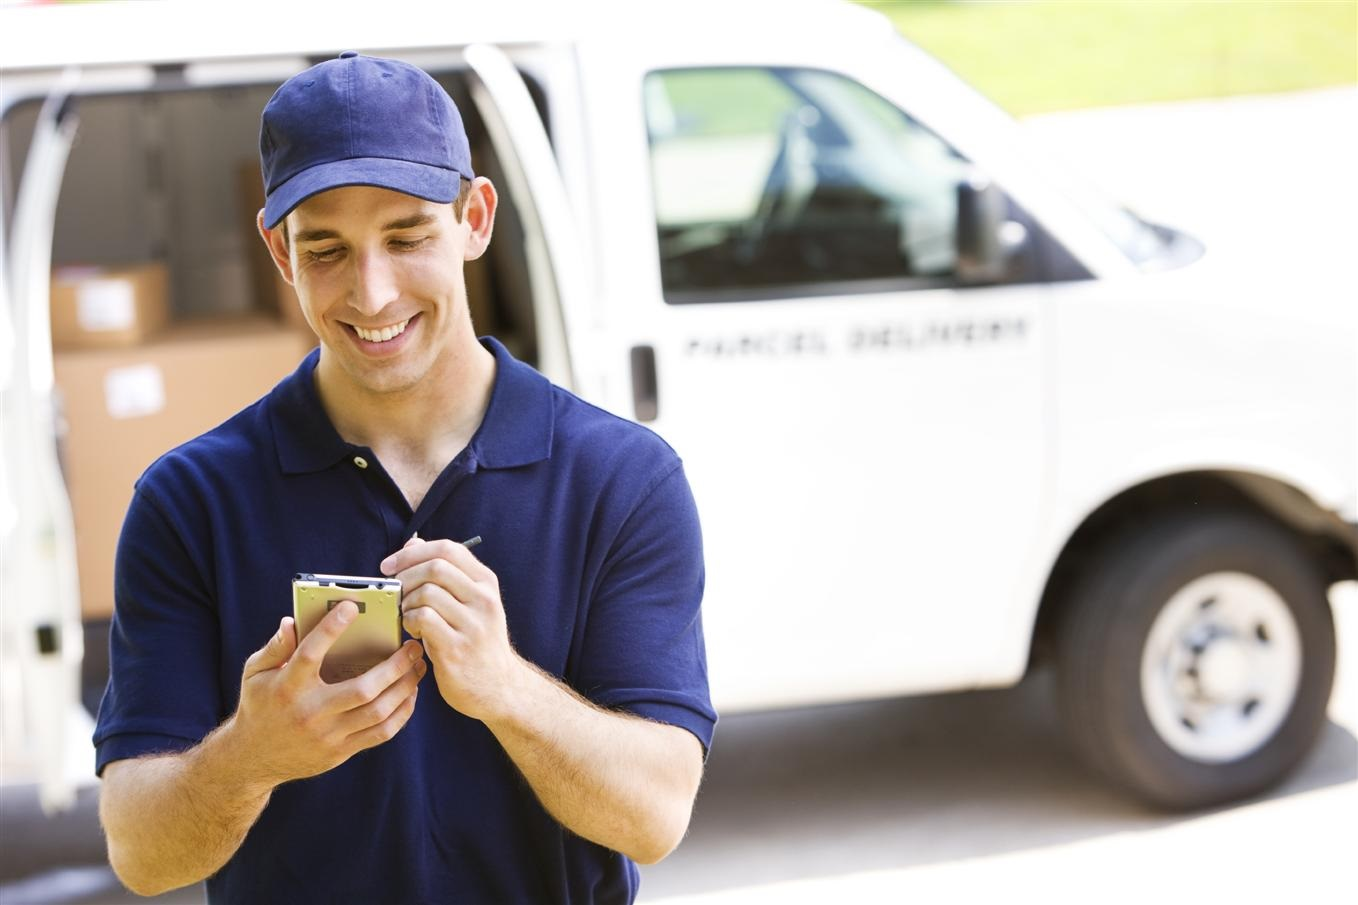 Understanding about the important features of parcel delivery services